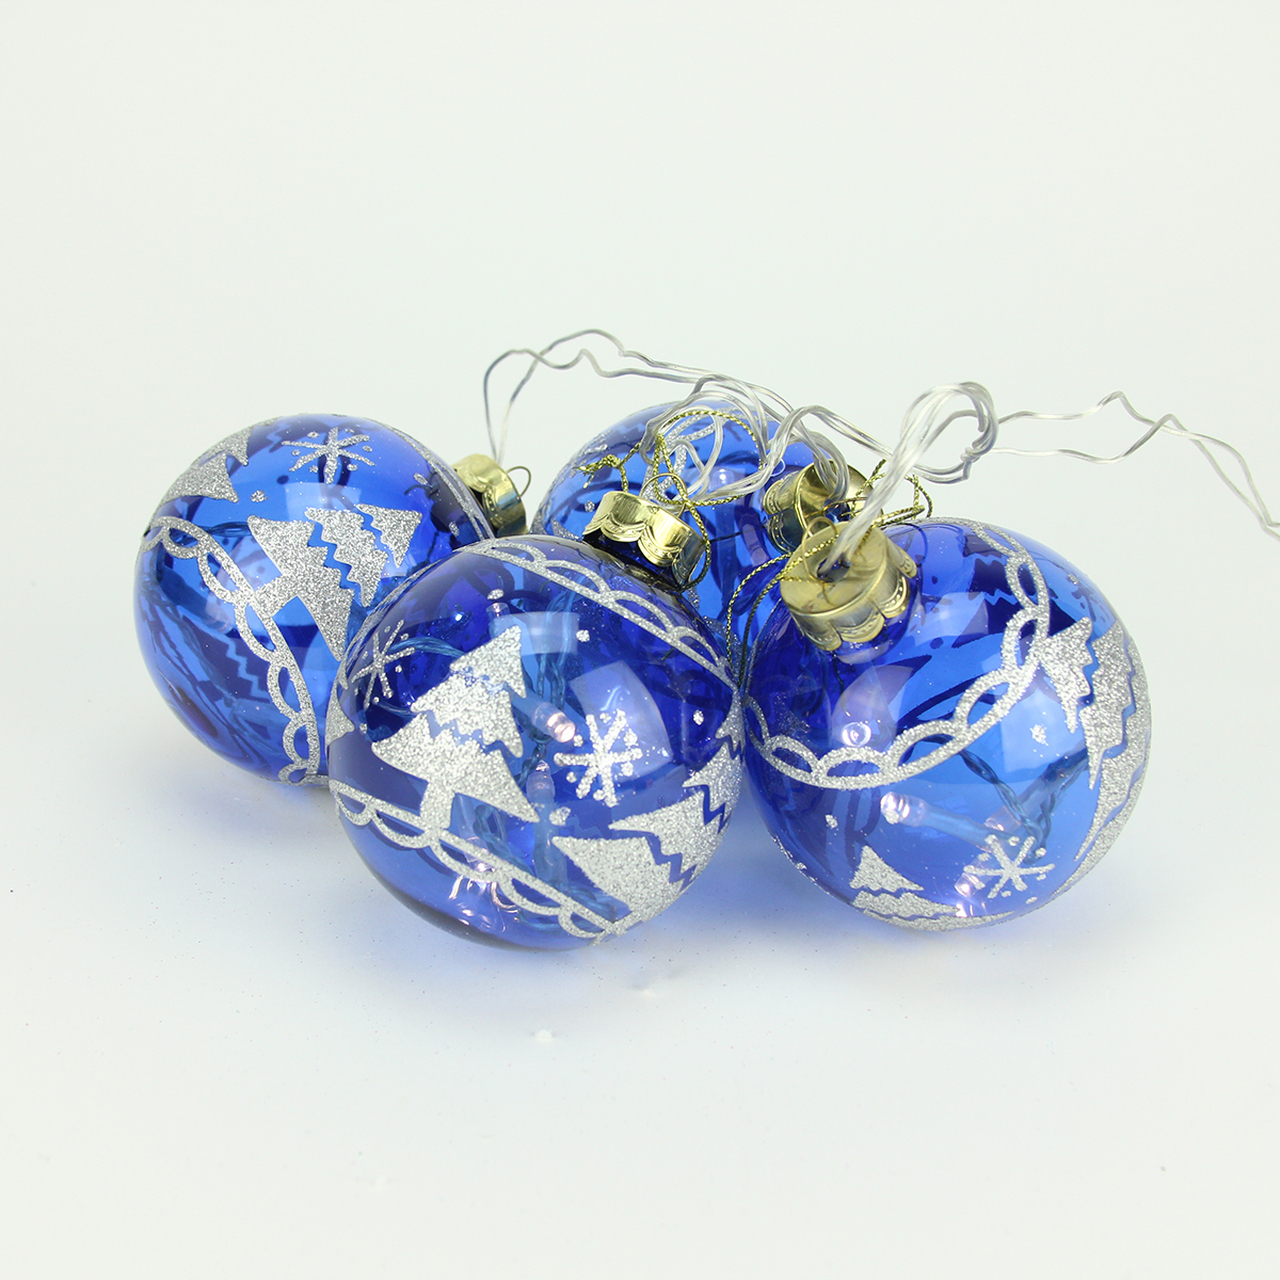 set of 4 battery operated blue glass ball led lighted christmas ornaments 31464199 - Lighted Christmas Ornaments